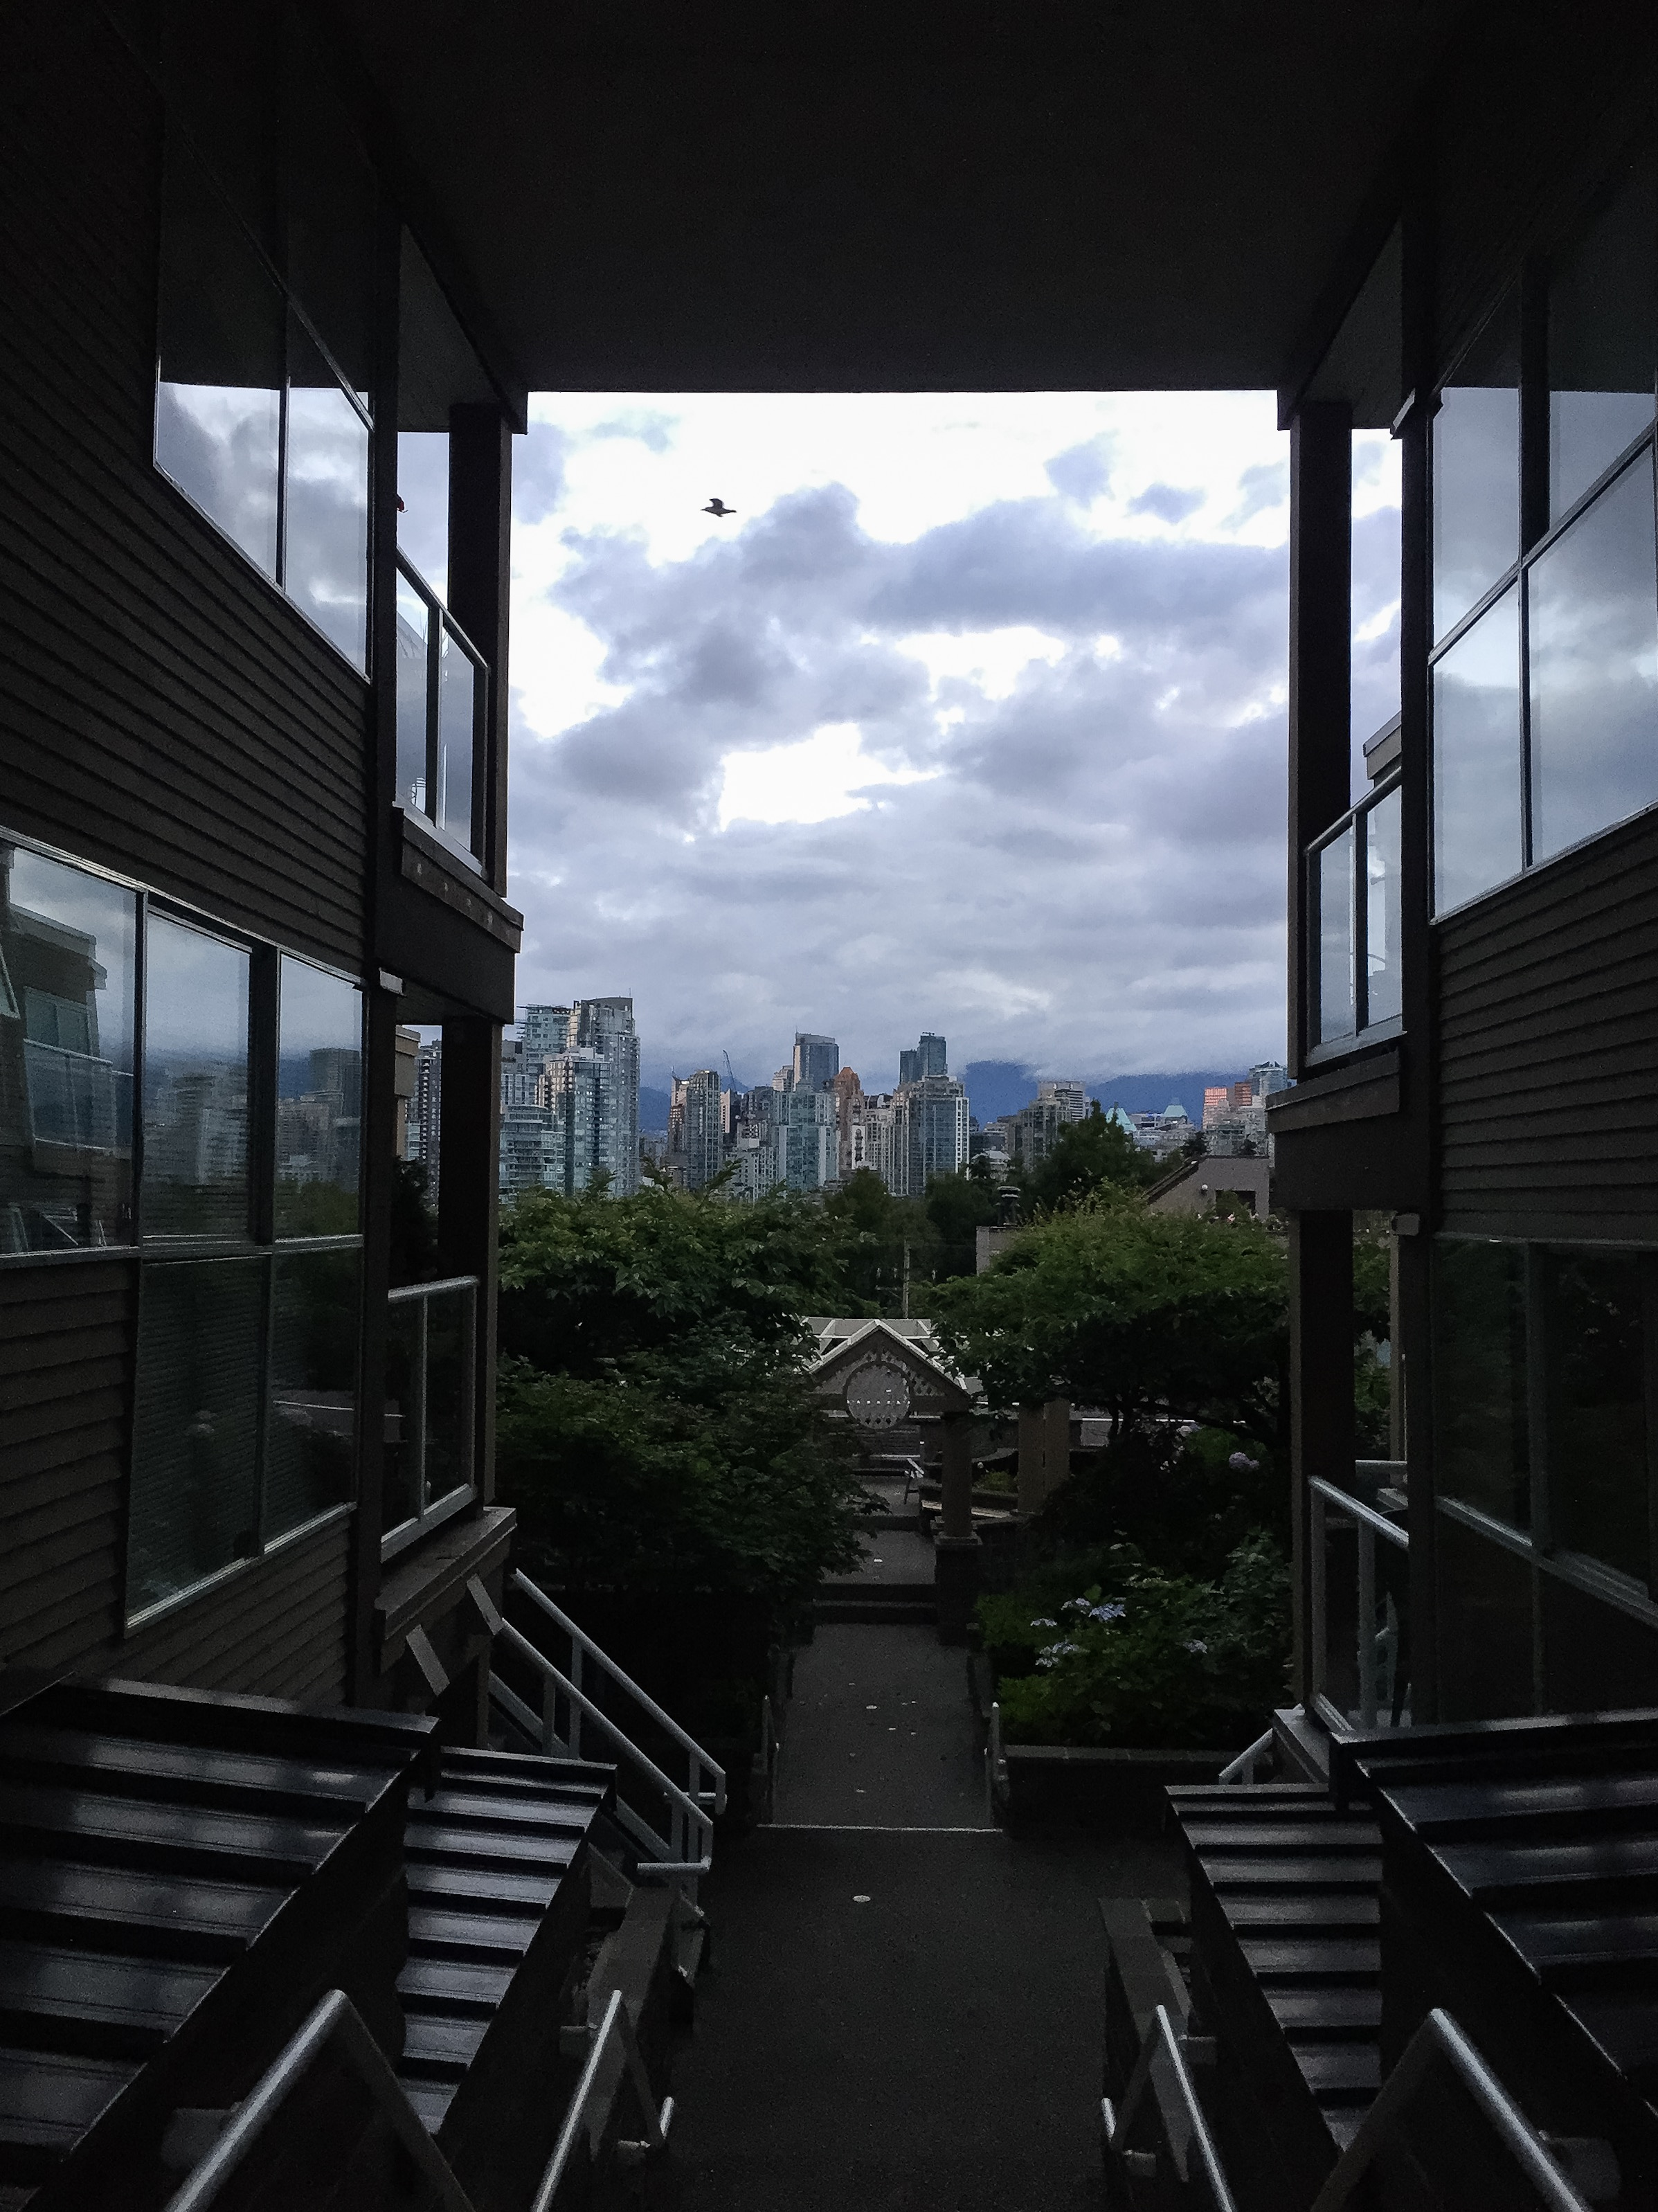 5:30AM Walk to Amtrak | Vancouver